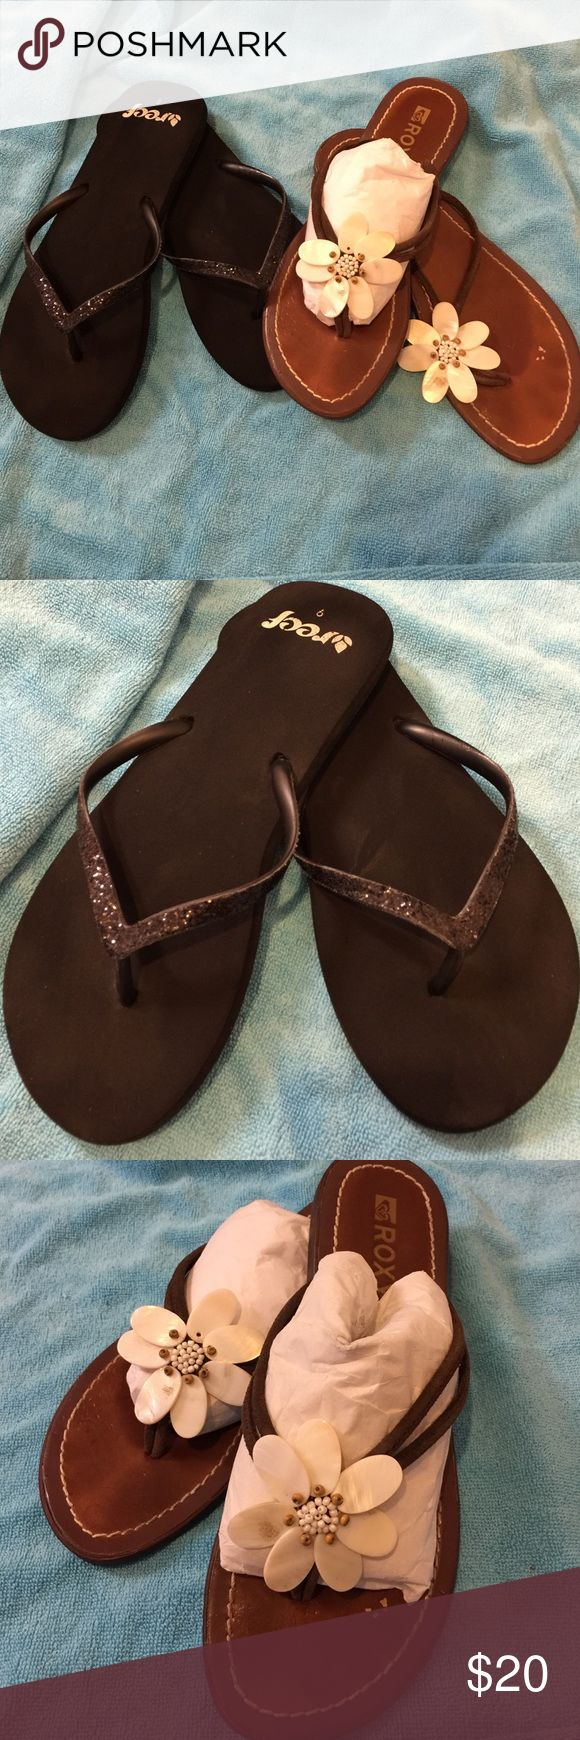 Bundle Roxy & Reef slippers size 9, from paradise Anything you see on these slippers (flip flops), is from Hawaii, my home away from home. Both in really good condition with a lot of aloha left in them🌺 Shoes